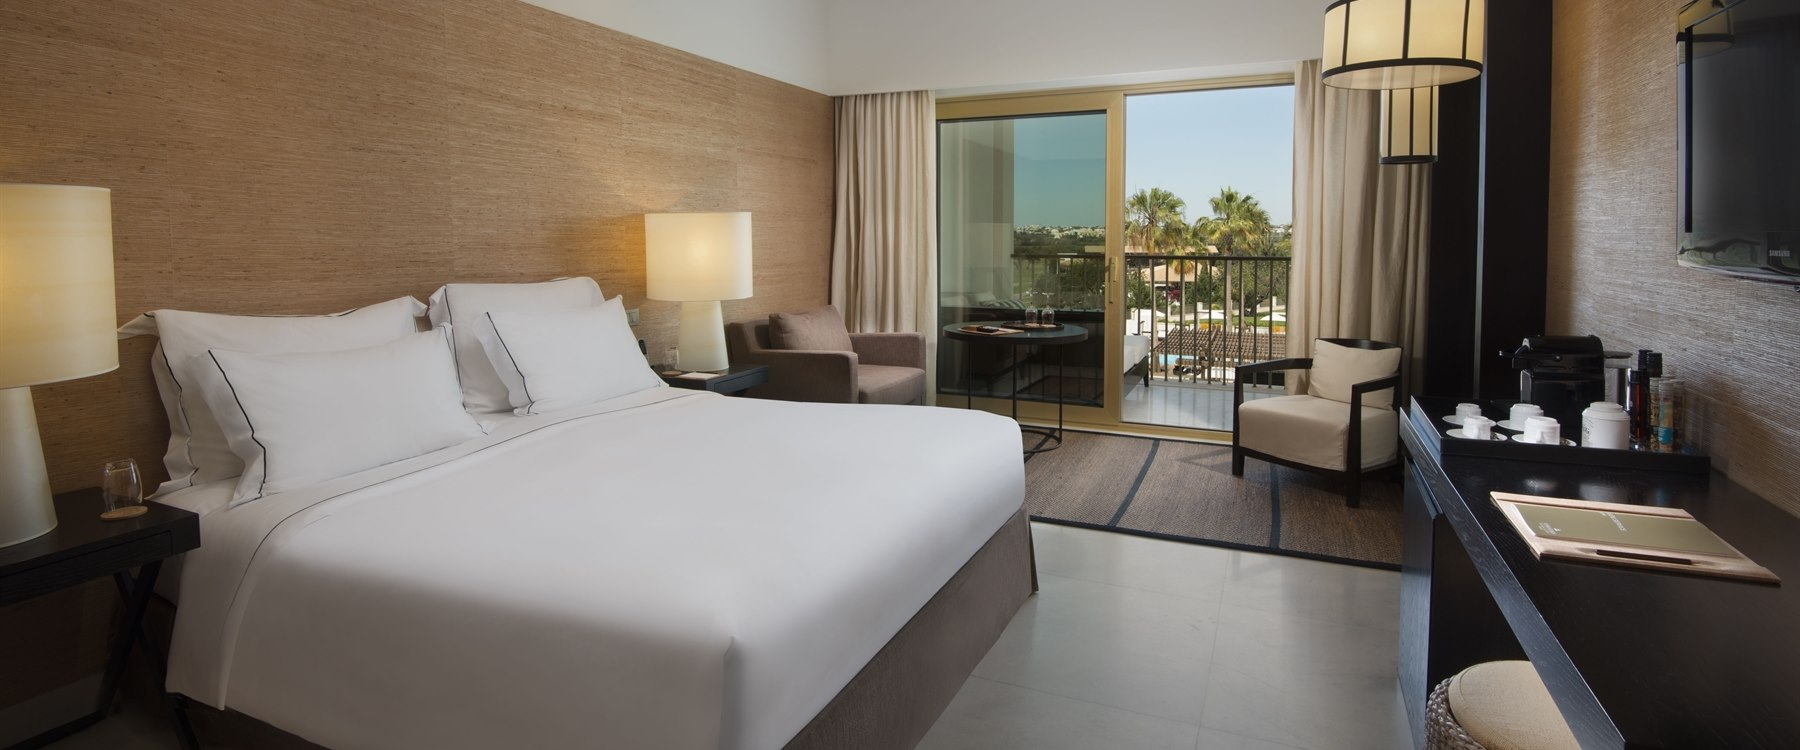 Deluxe Room with Pool View at Anantara Vilamoura, Algarve